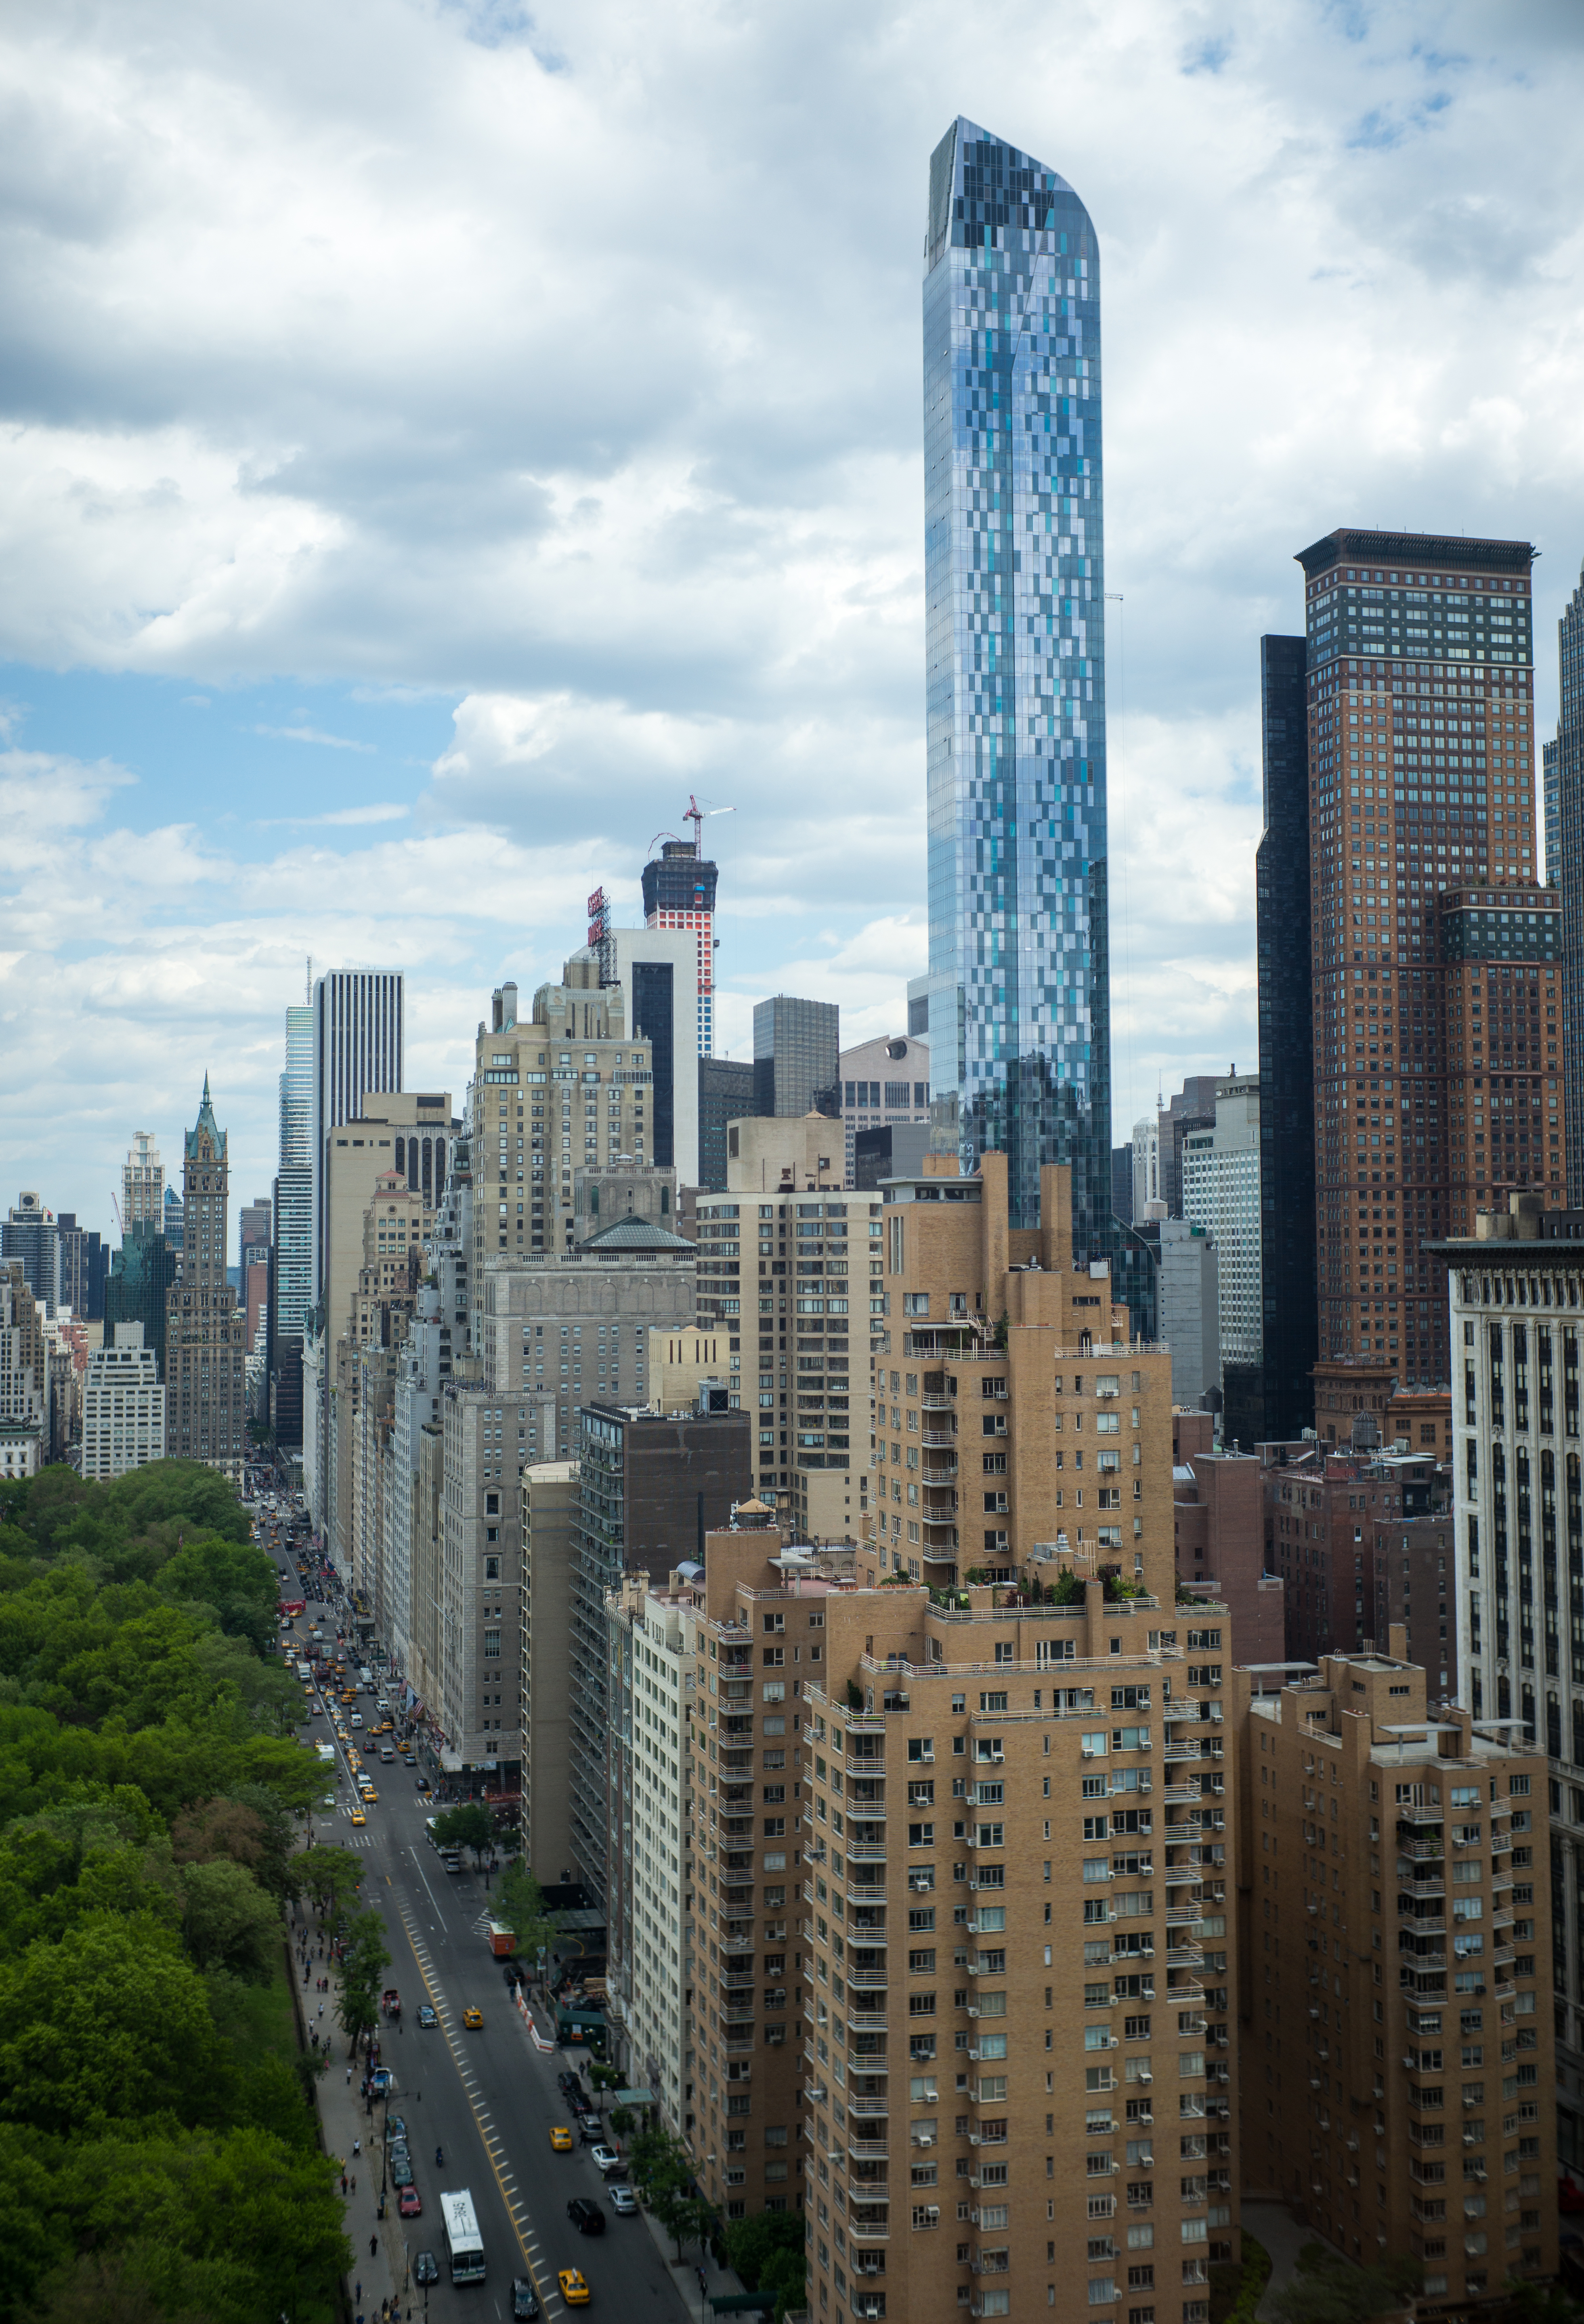 A view of the southern skyline of Central Park is seen on May 19, 2014 including the 90-story One57 luxury condominium building under construction in New York City.